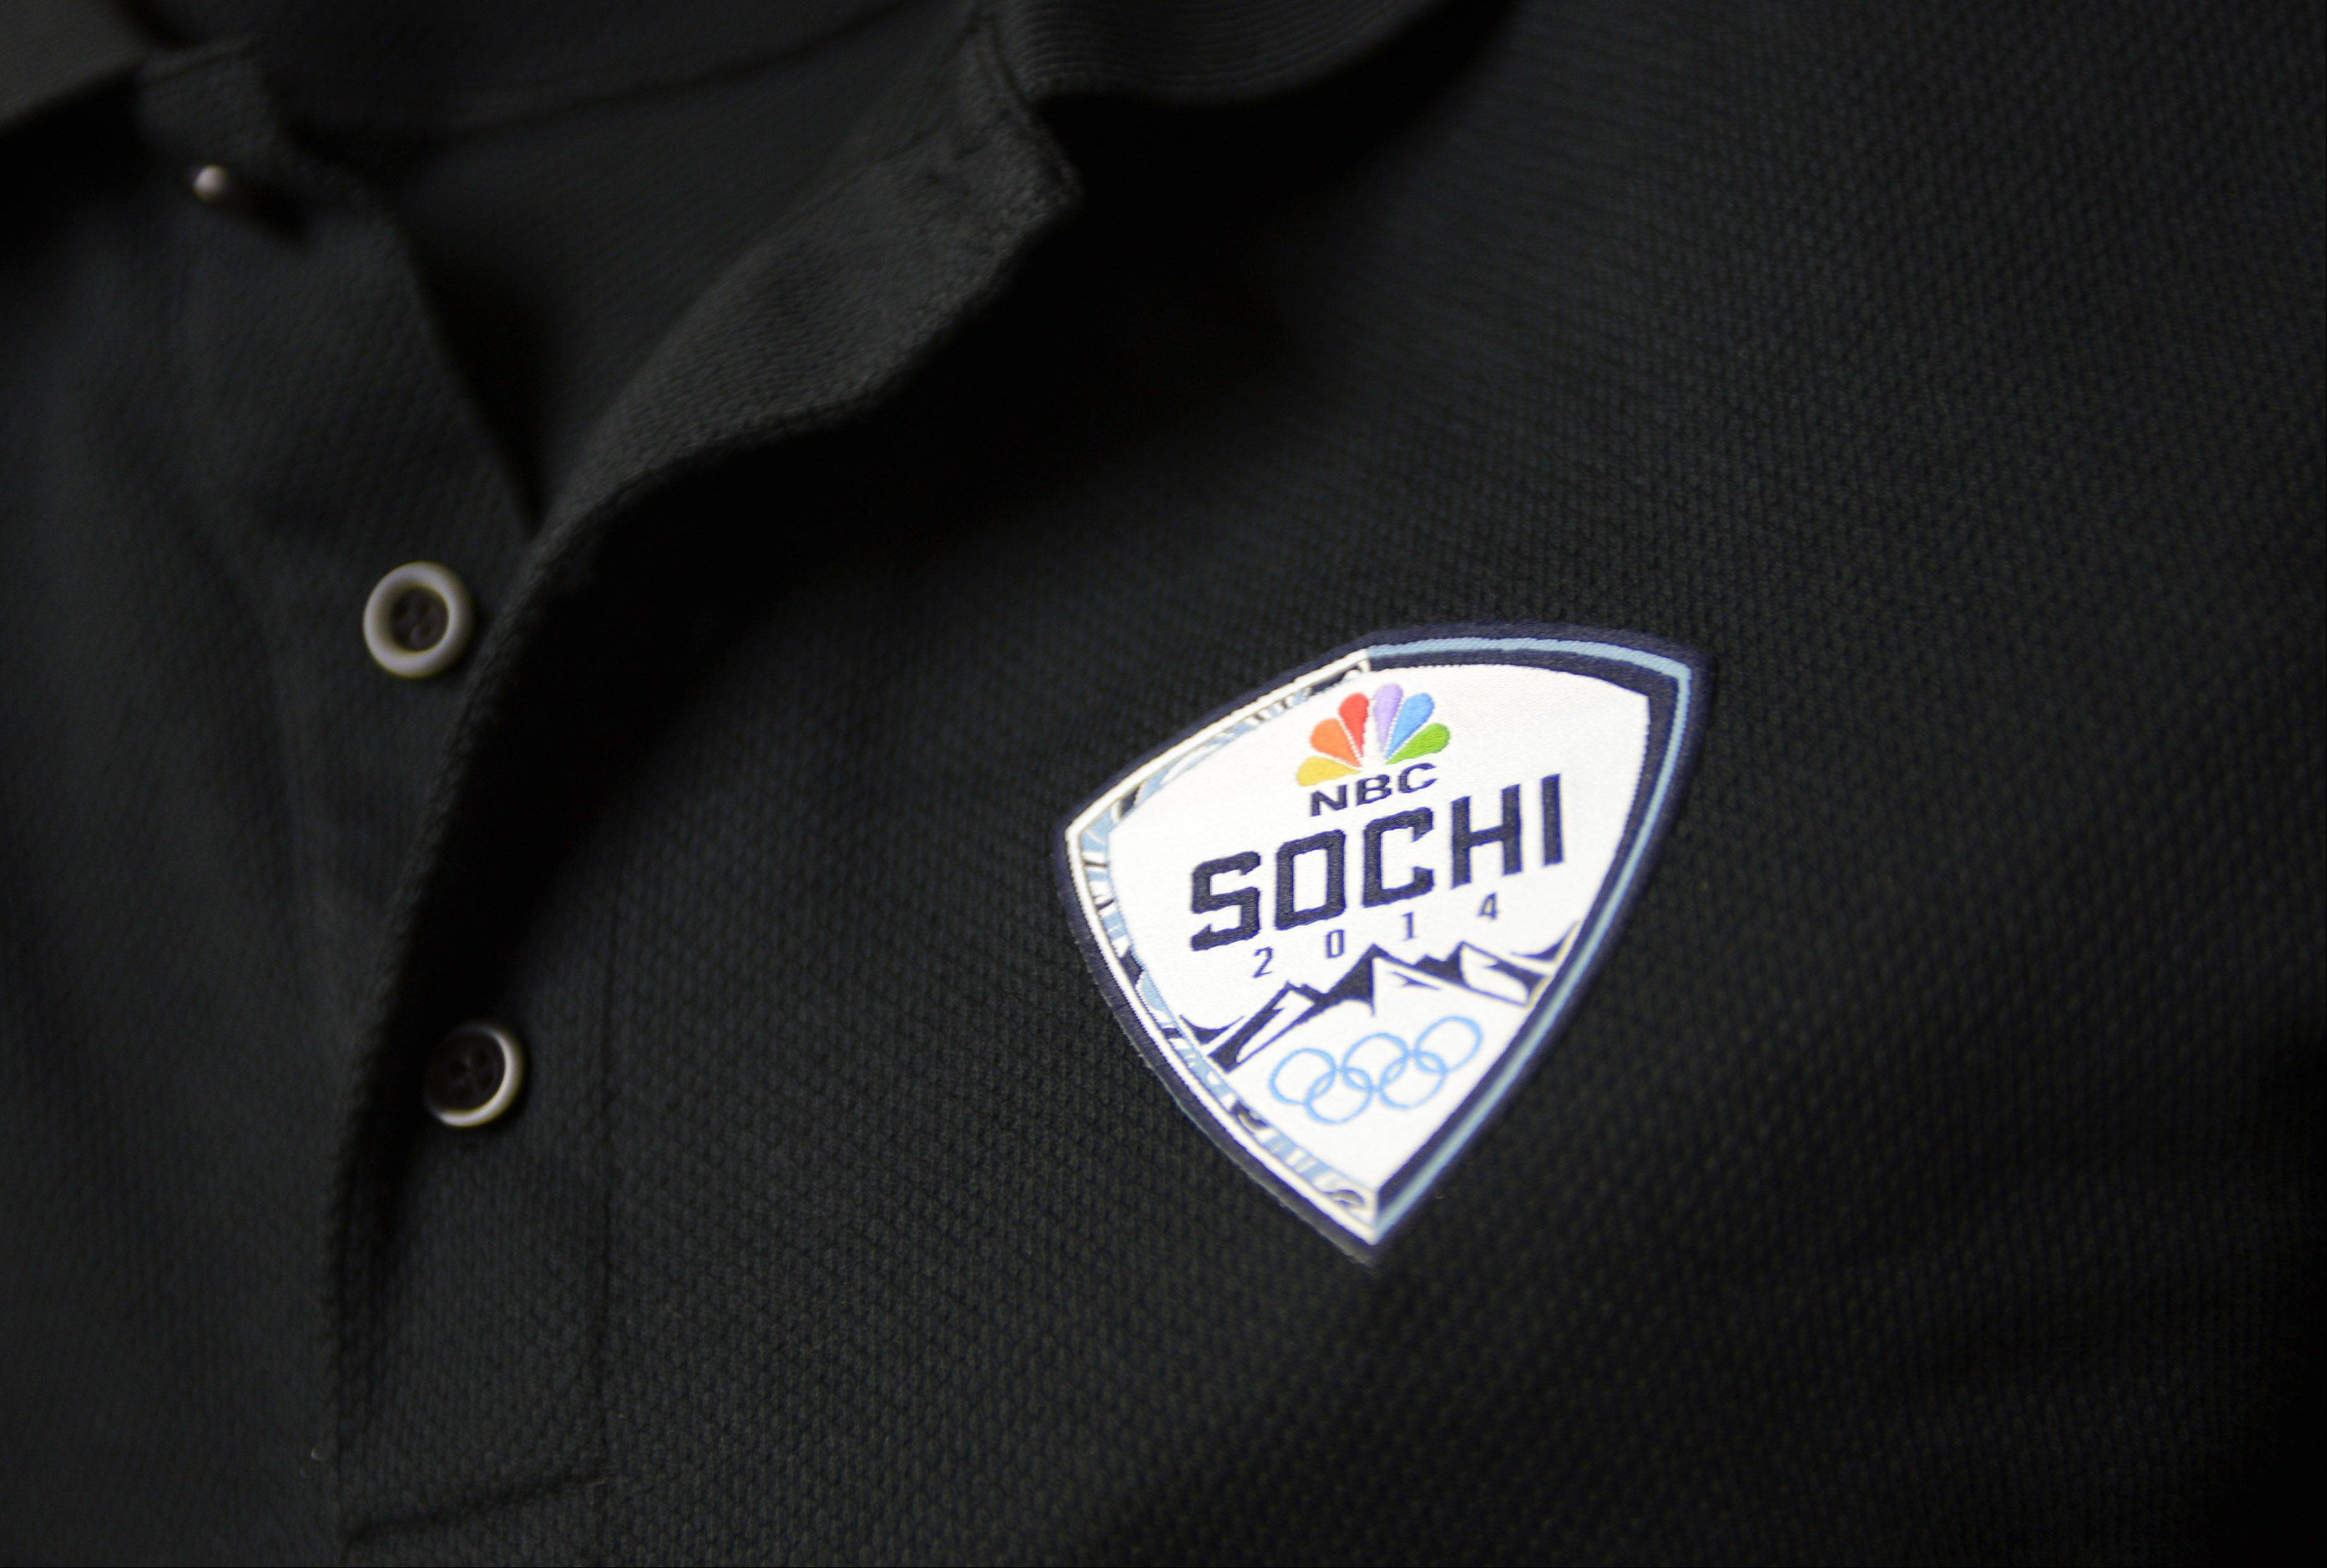 Trading in his emergency room scrubs for this Olympic polo shirt, Lake County Dr. Timur Kouliev is the medical coordinator for the NBC staff covering the 2014 Olympics in Sochi, Russia. He also is part of the medical team for the U.S. Olympic athletes.